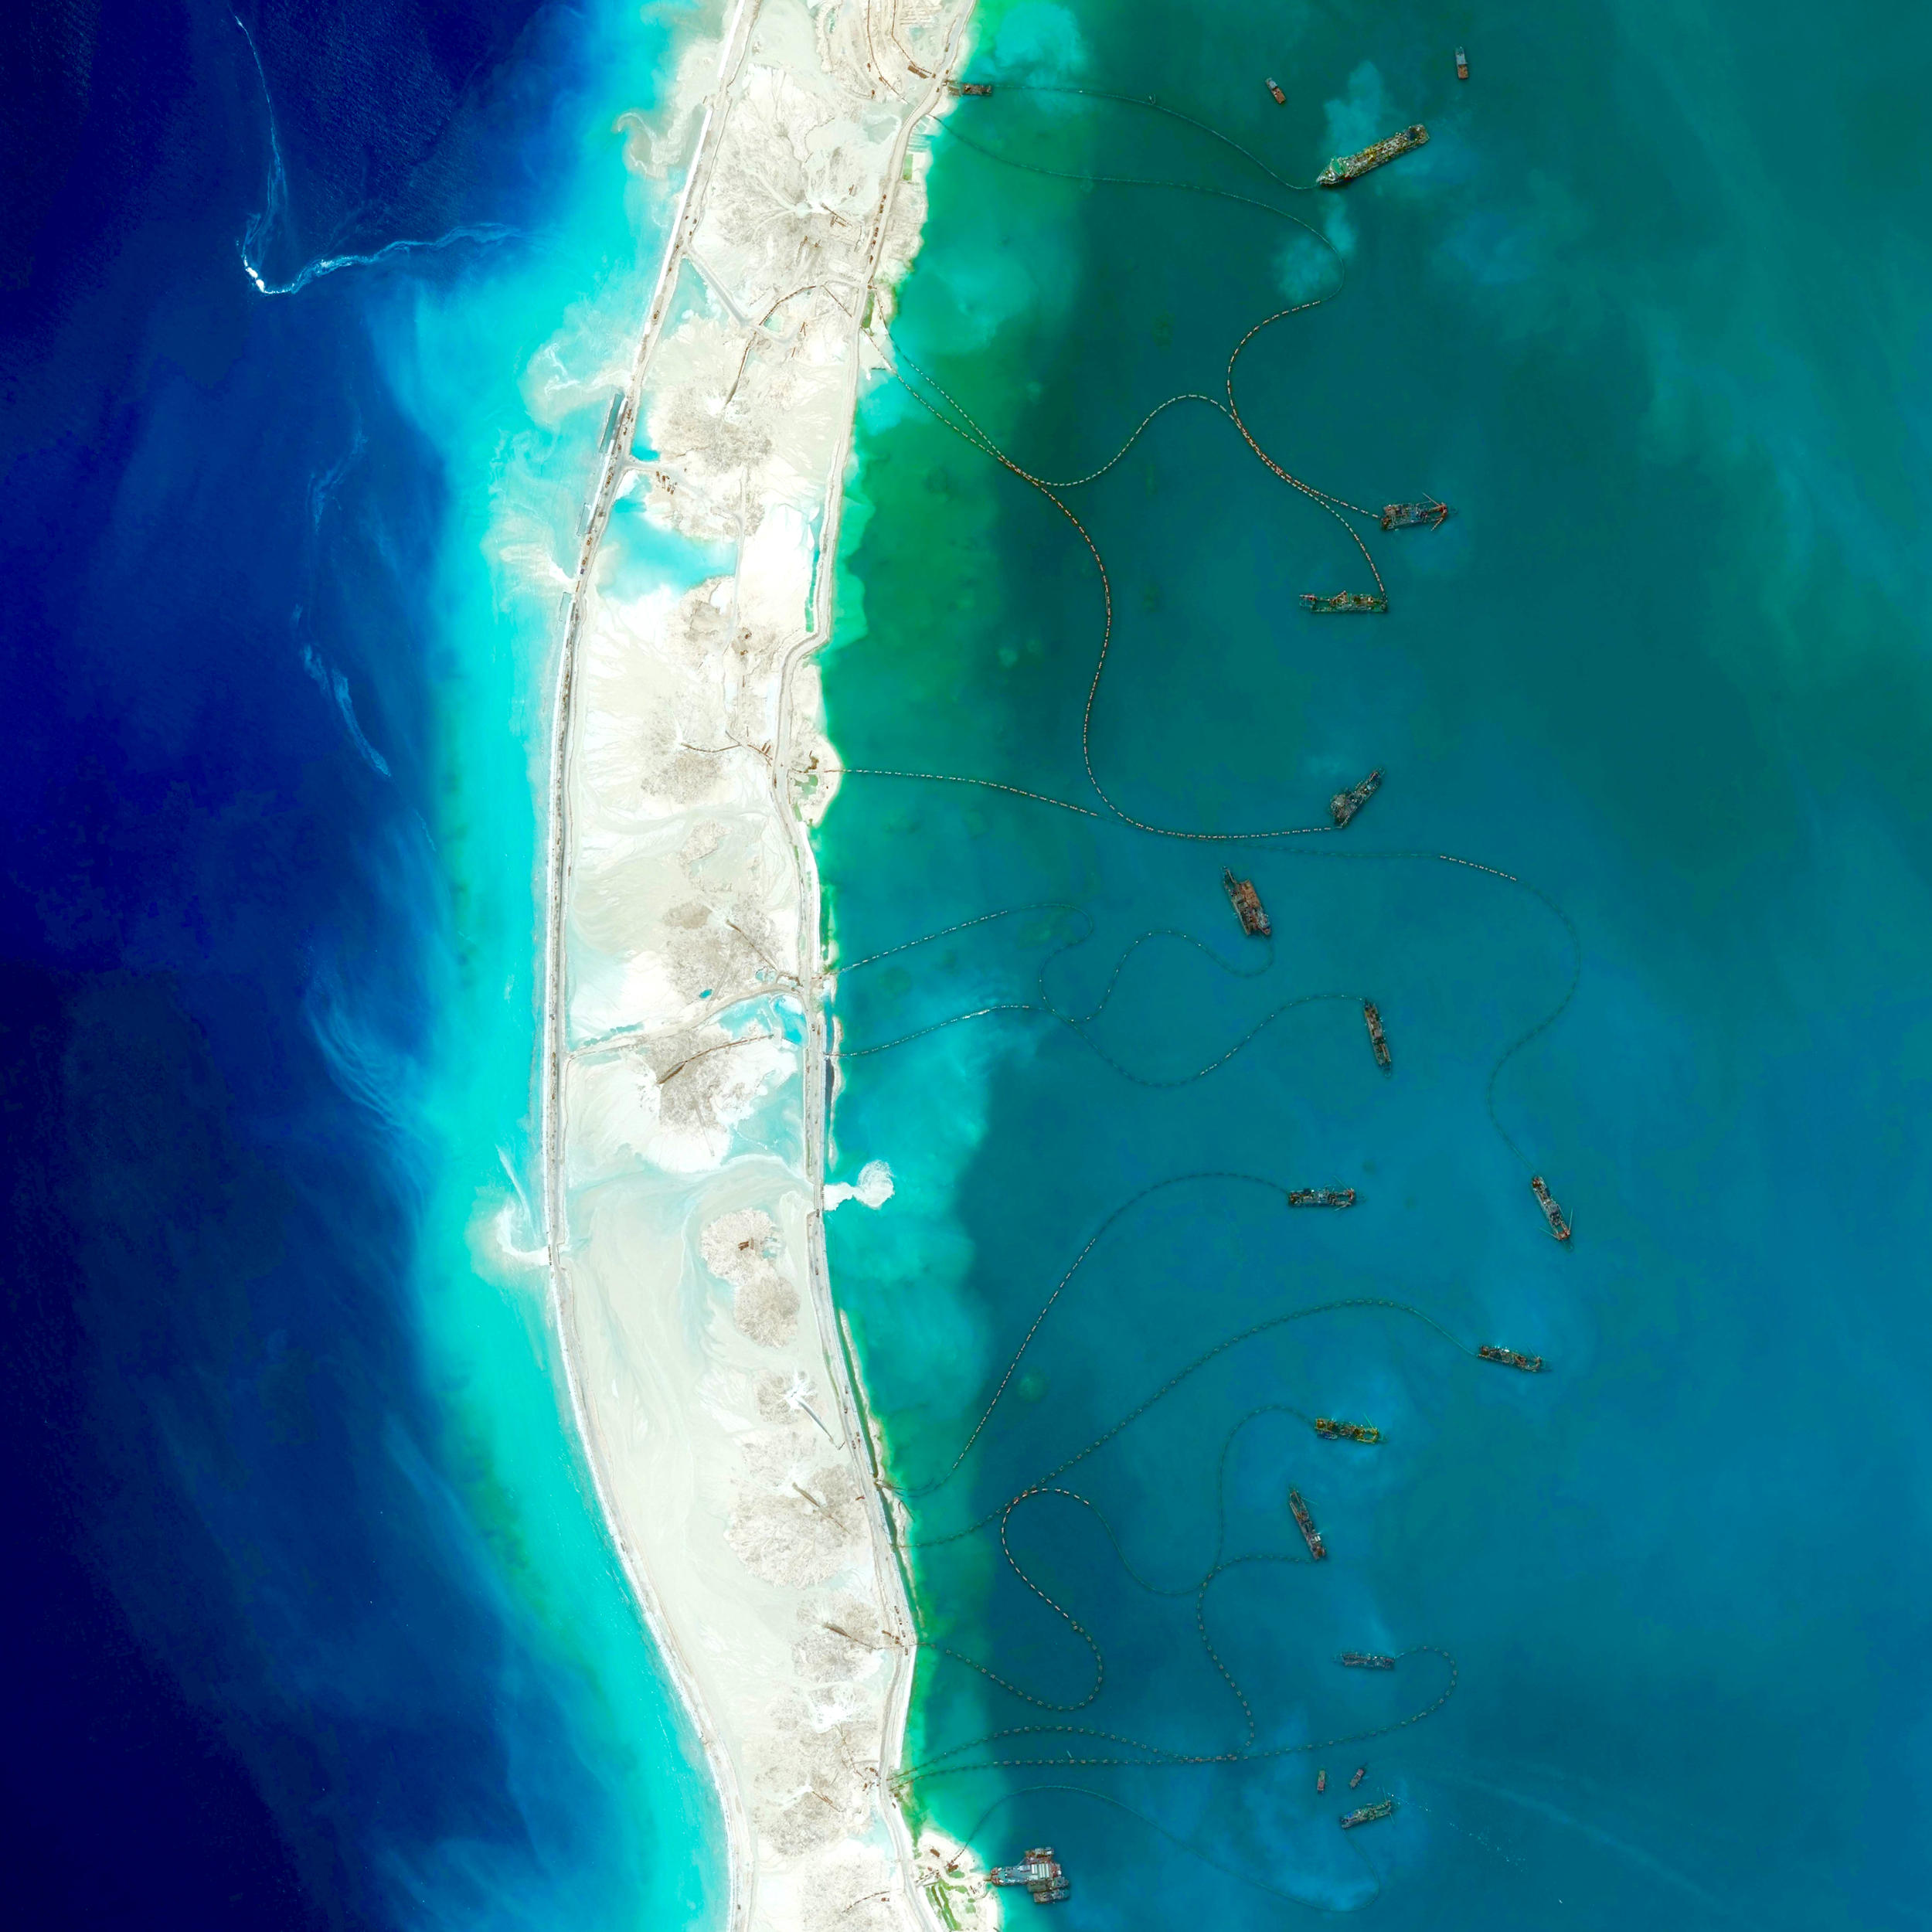 """7/31/2015   Mischief Reef   Spratly Islands, South China Sea  9°55′N 115°32′E    The New York Times published a fascinating piece this morning on Chinese island building in the South China Sea. Dredgers - the boats you see here around """"Mischief Reef"""" - pump sediment from the ocean up into floating pipes, and deposit the material onto the reef to increase land area. This enables the large-scale construction projects currently underway on the newly formed islands. See the full story  here ."""